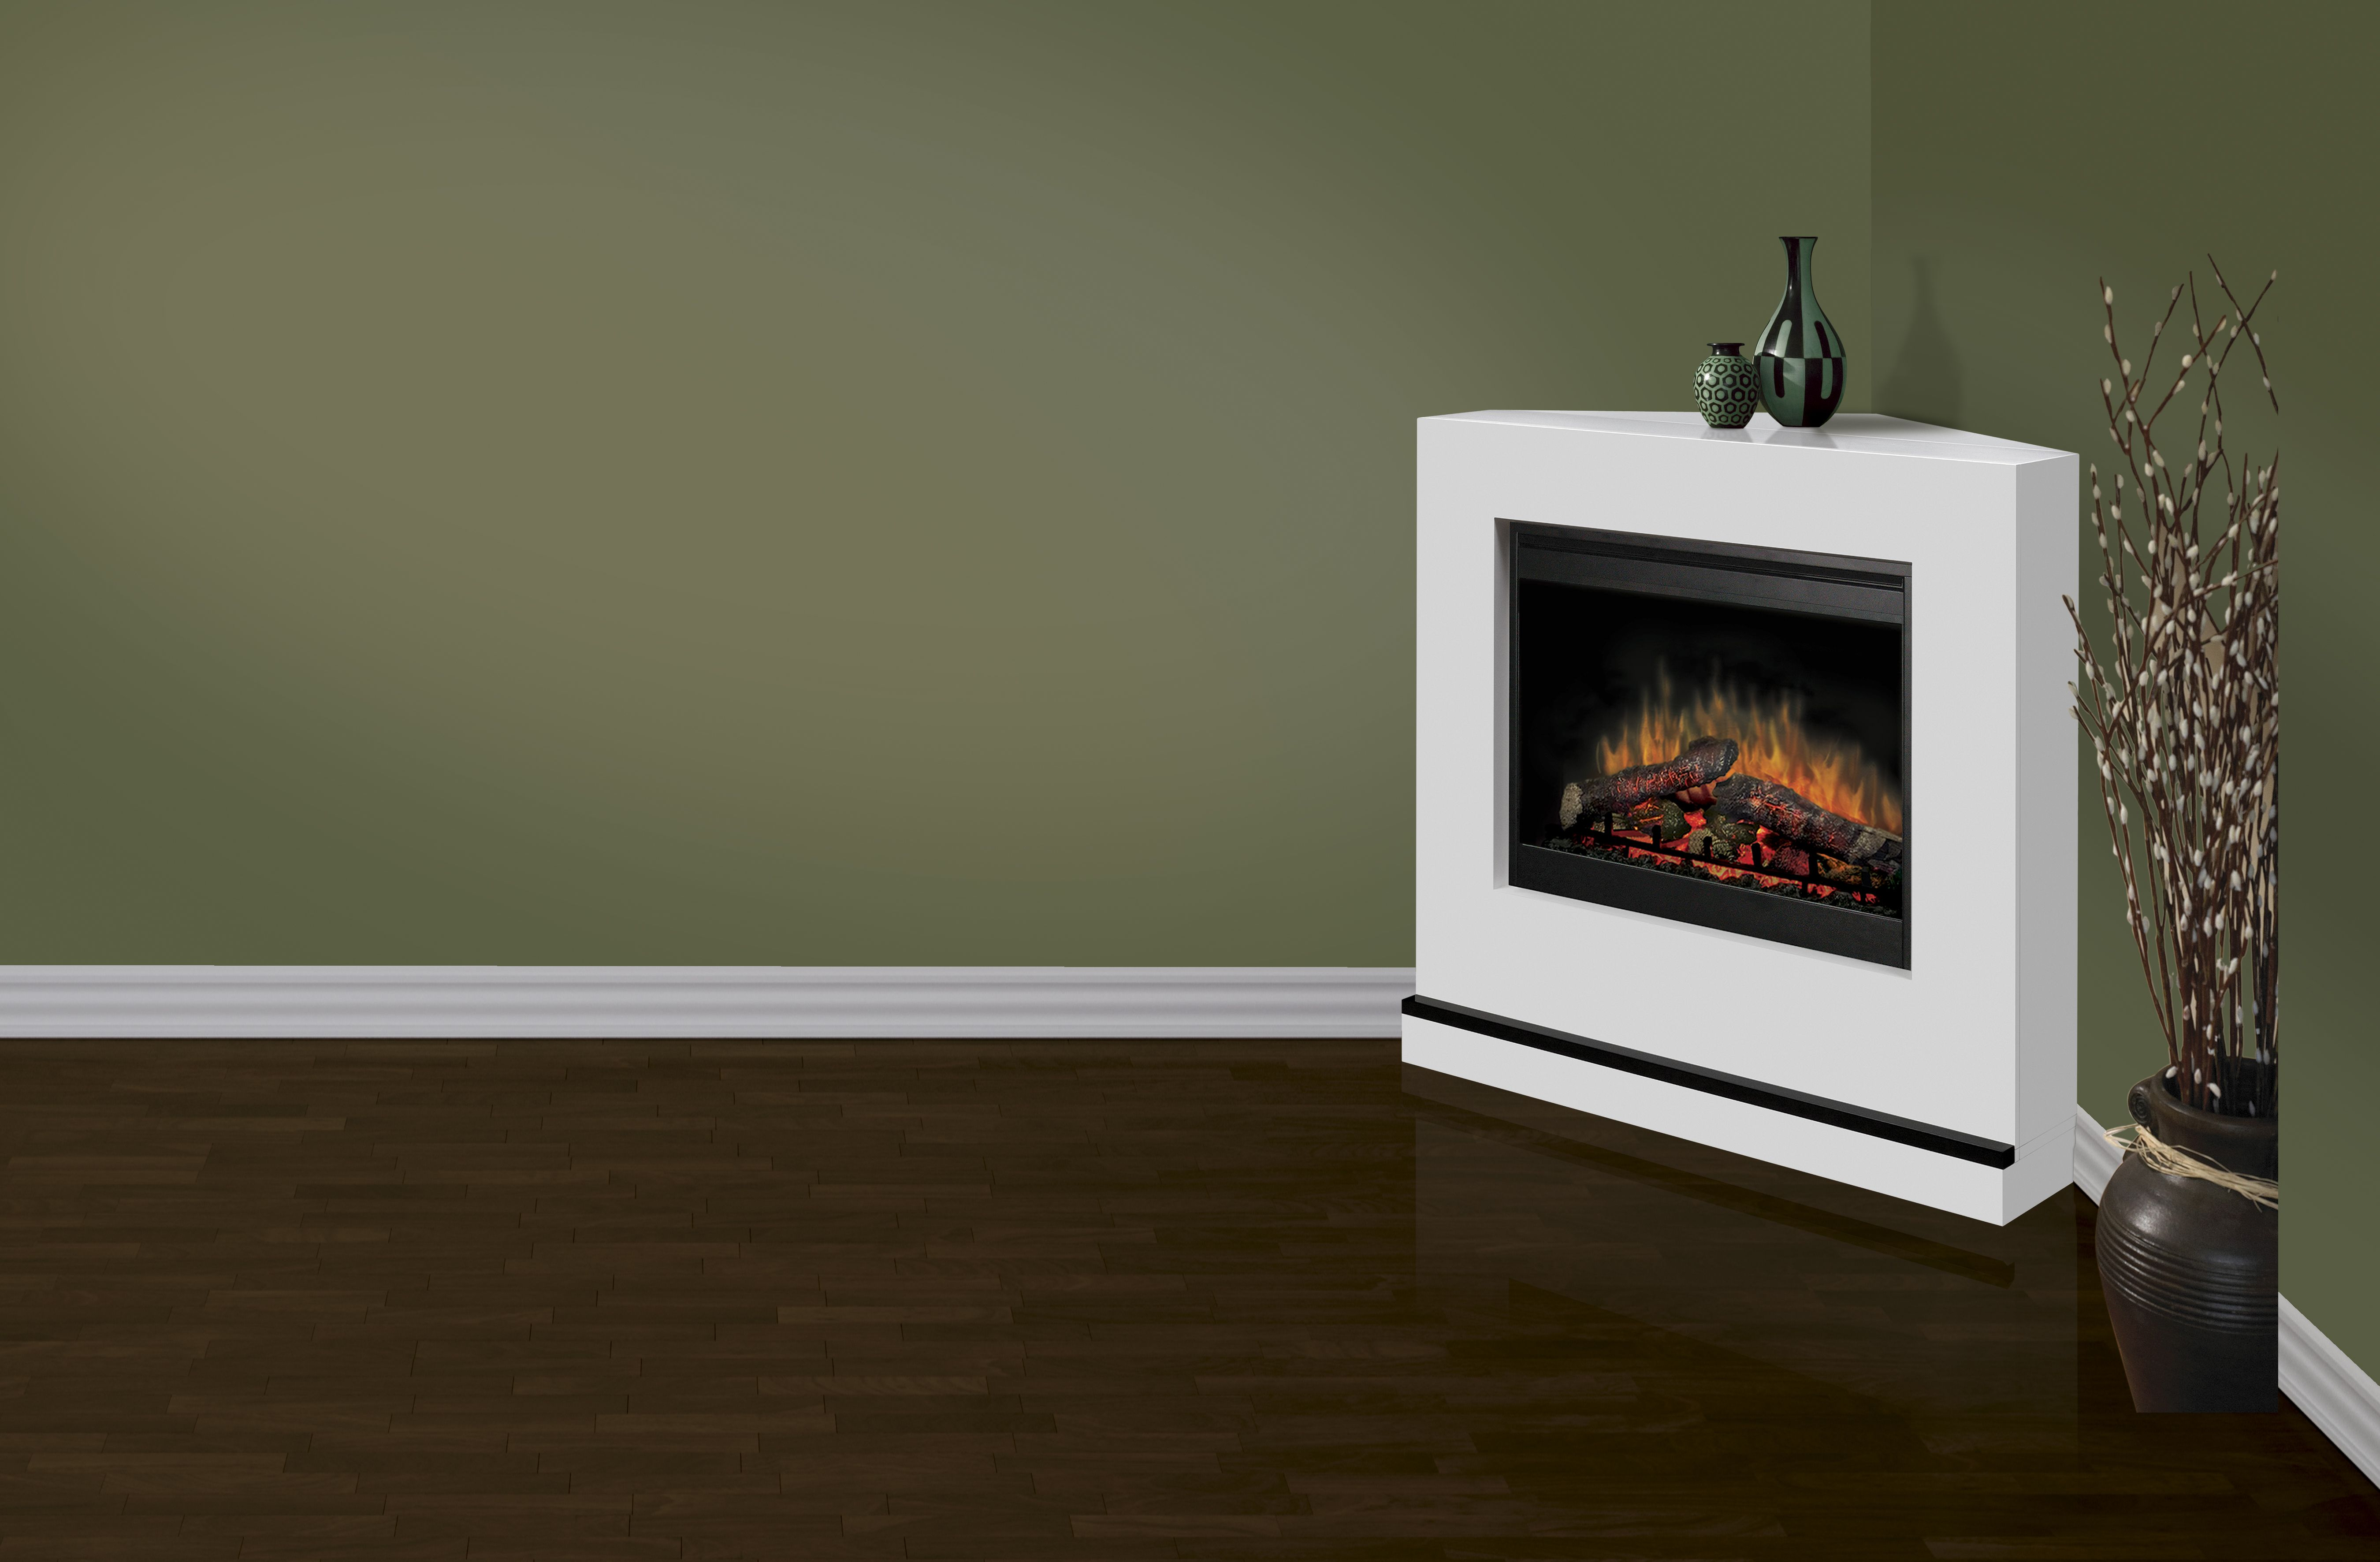 Bobs Fireplace Dimplex Df2608 Electric Fireplace Insert 699 00 Cad Bob The